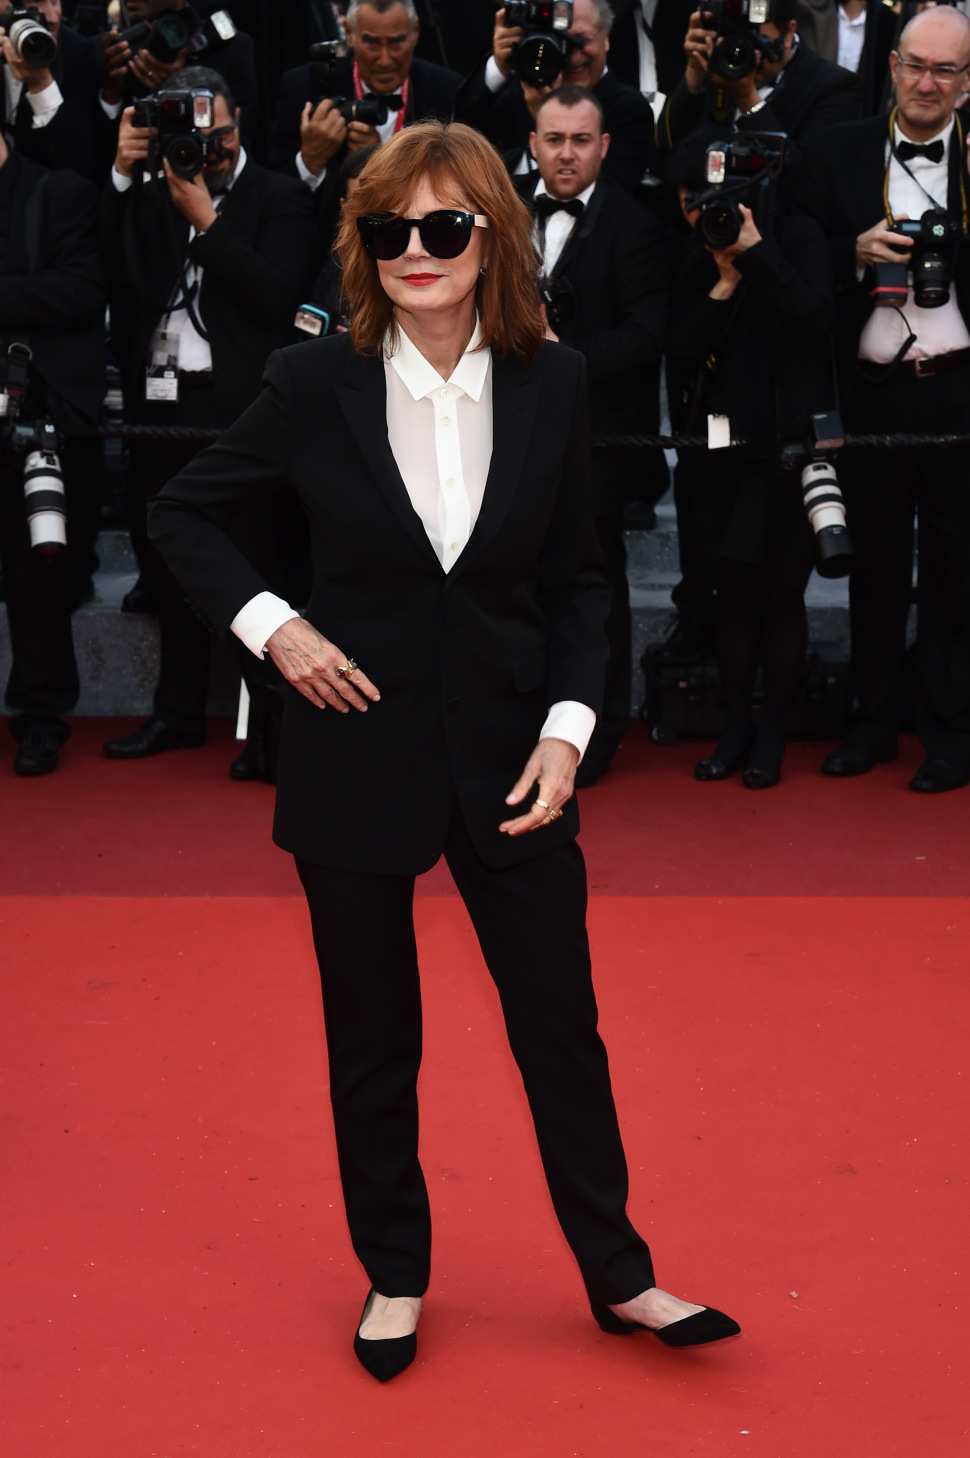 Mandatory Credit: Photo by Buckner/Variety/REX/Shutterstock (5682159u) Susan Sarandon'Cafe Society' premiere and opening ceremony, 69th Cannes Film Festival, France - 11 May 2016